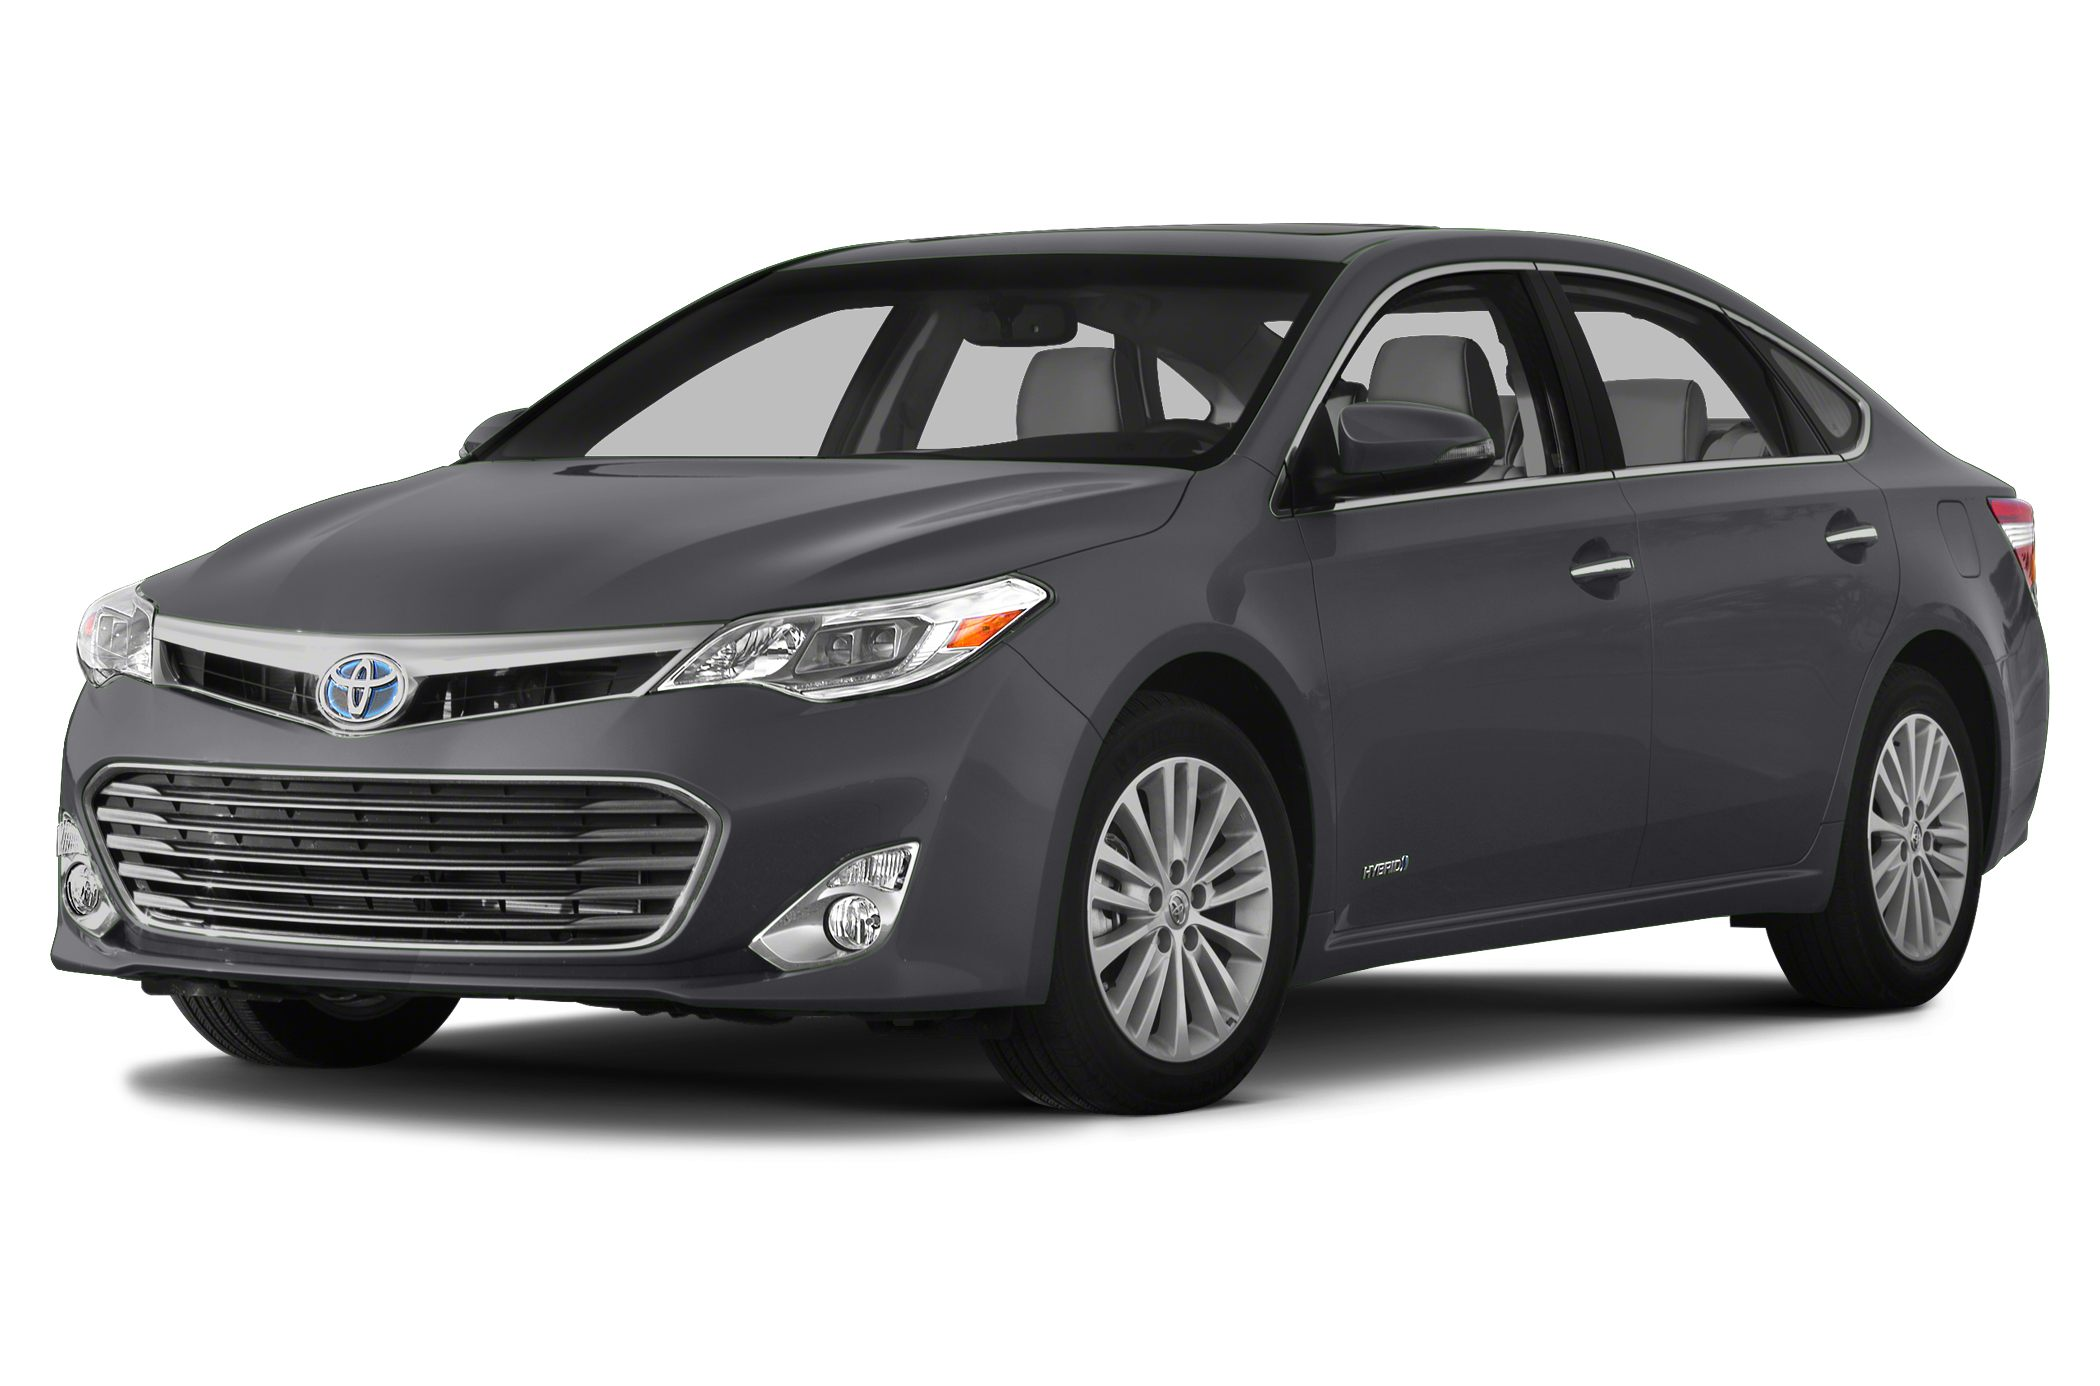 2014 toyota avalon hybrid information and photos momentcar. Black Bedroom Furniture Sets. Home Design Ideas